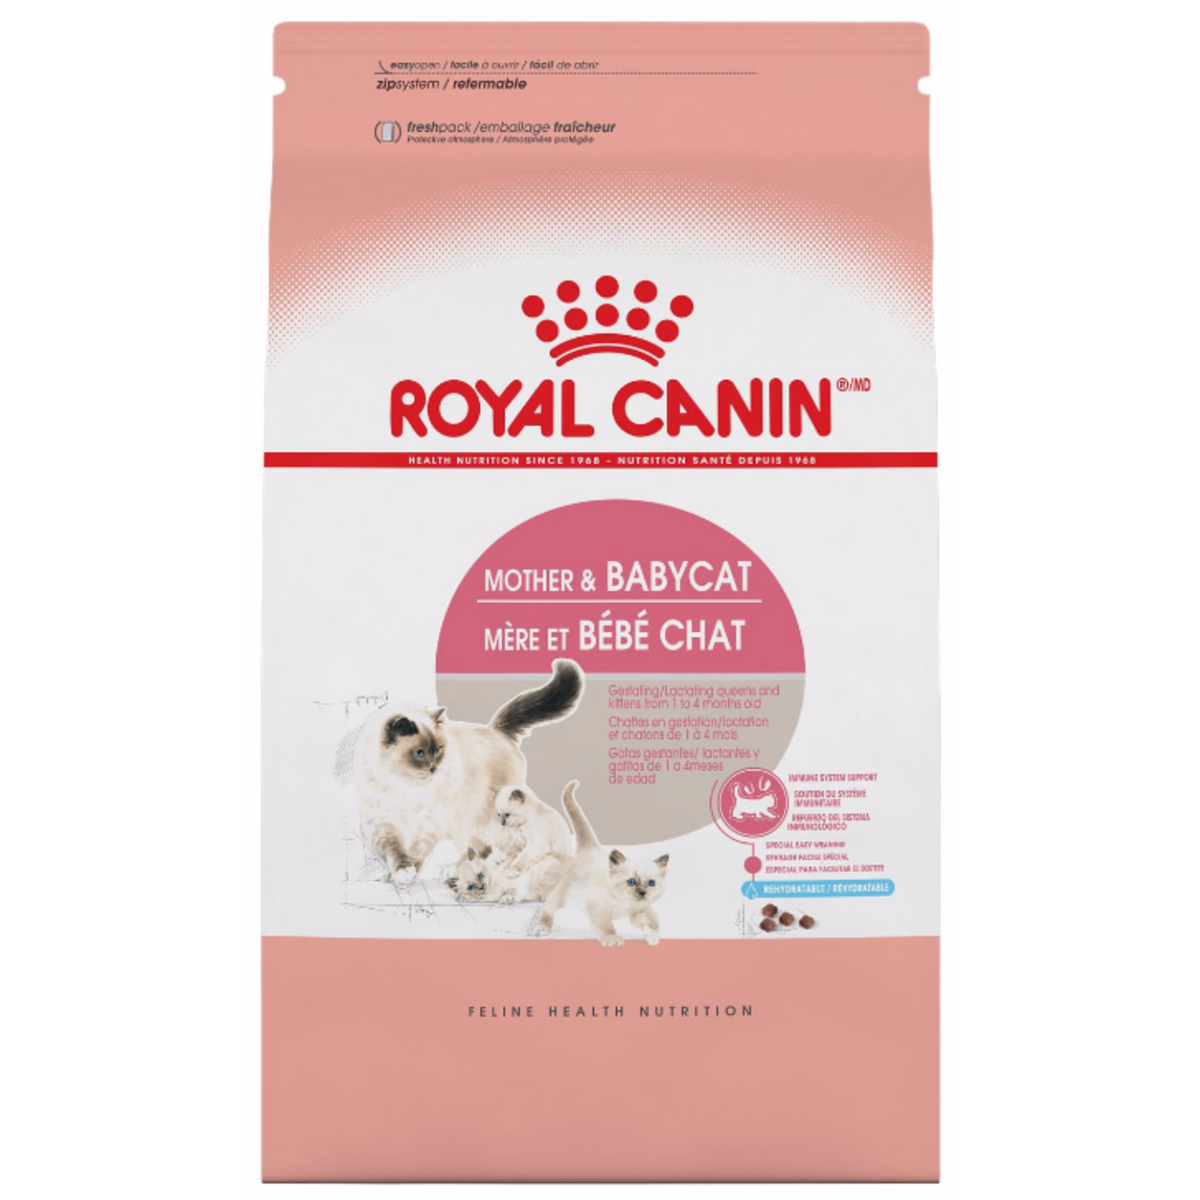 Royal Canin Babycat Food